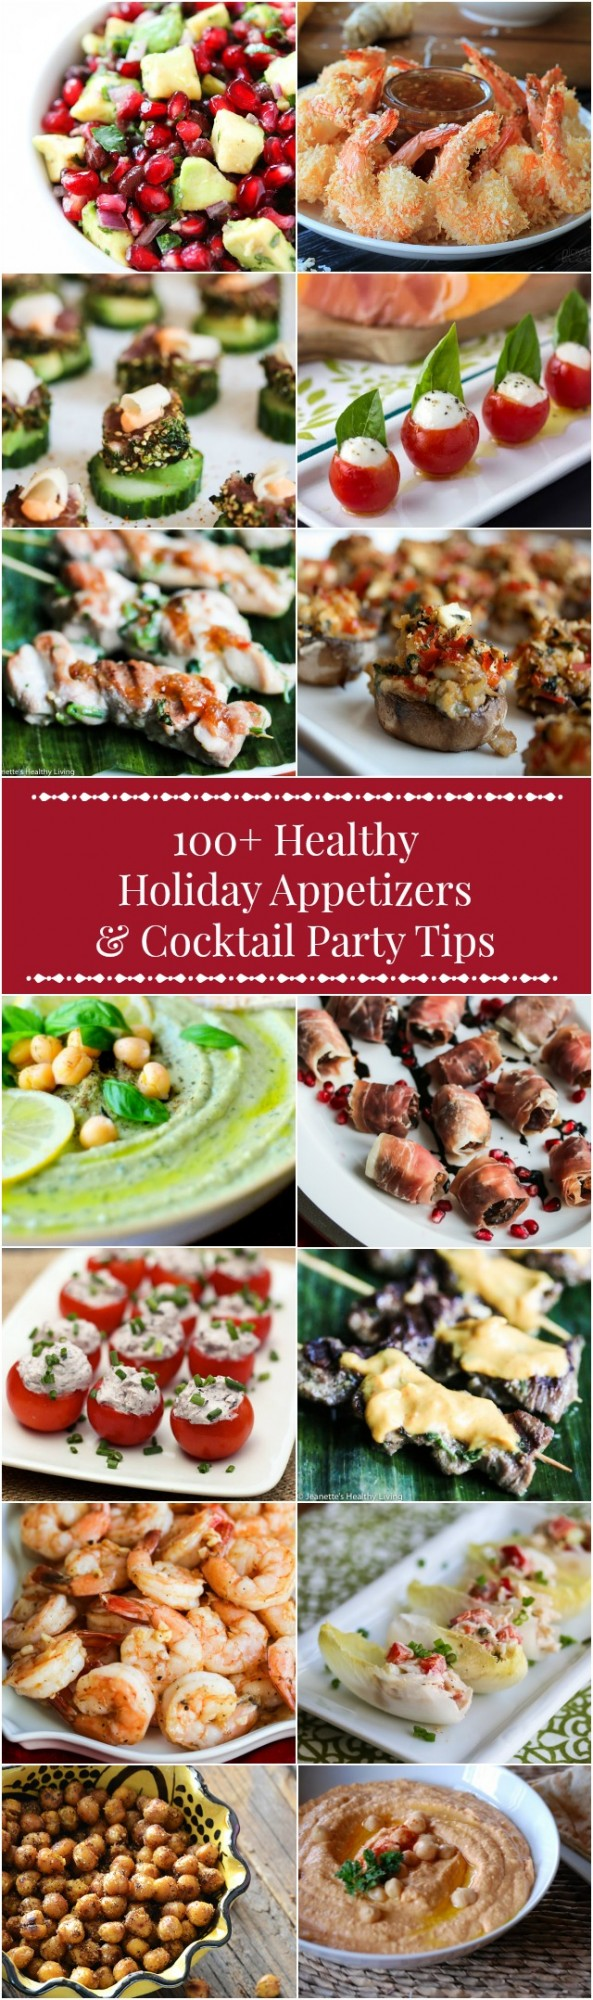 100+ Healthy Holiday Appetizers & Cocktail Party Tips - PIN this now to refer to throughout the holiday season - dips, finger foods and more